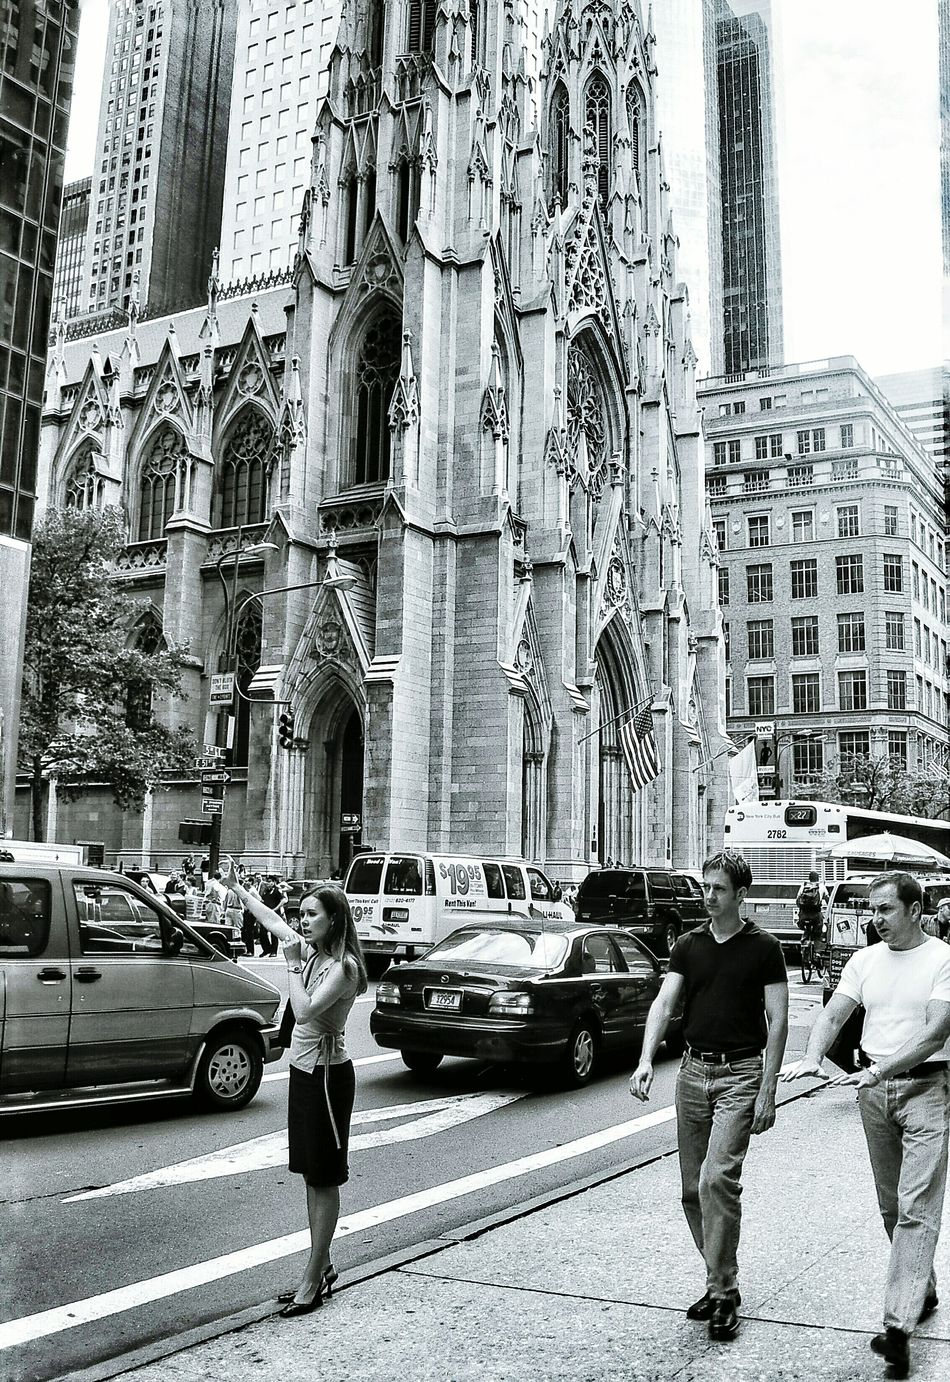 One of my early street photography captures. Captured in New York with St Patricks in the back ground. Love the animation of the characters. City Life Street Architecture On The Move Motion Street Photography Battle Of The Cities Streetphotography Streetphotography_bw New York New York City Blackandwhite Black And White Black & White Black And White Photography Church Architecture Churches Architecture Film Filmisnotdead Film Photography 35mm Film St Patrick's Cathedral Hailing A Cab New York Street Photography